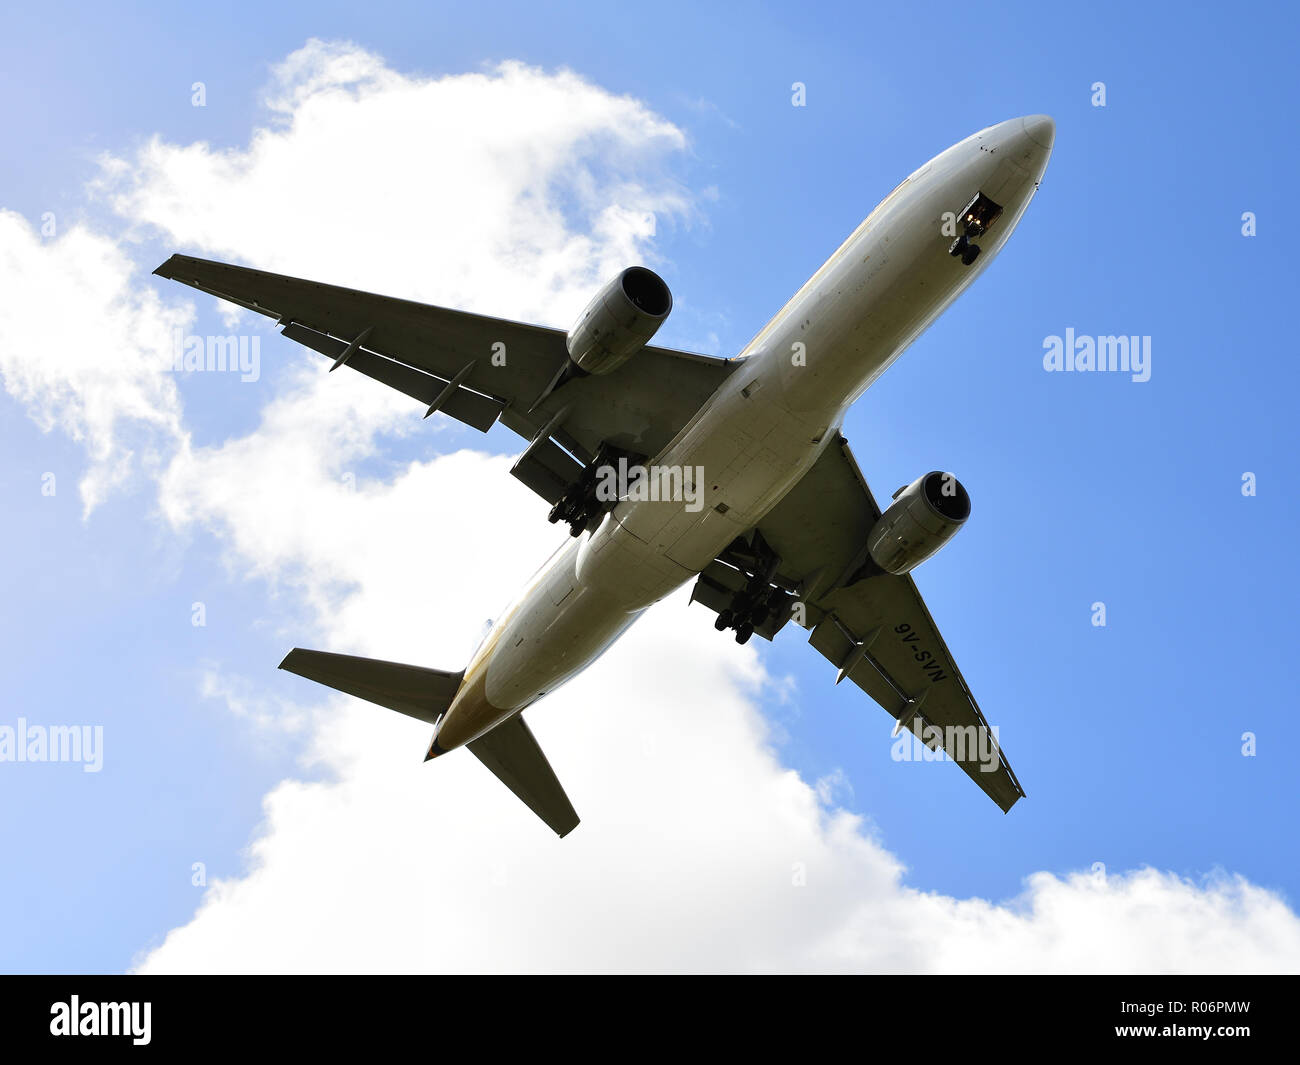 Singapore Airlines Boeing 777 on final approach for landing - Stock Image